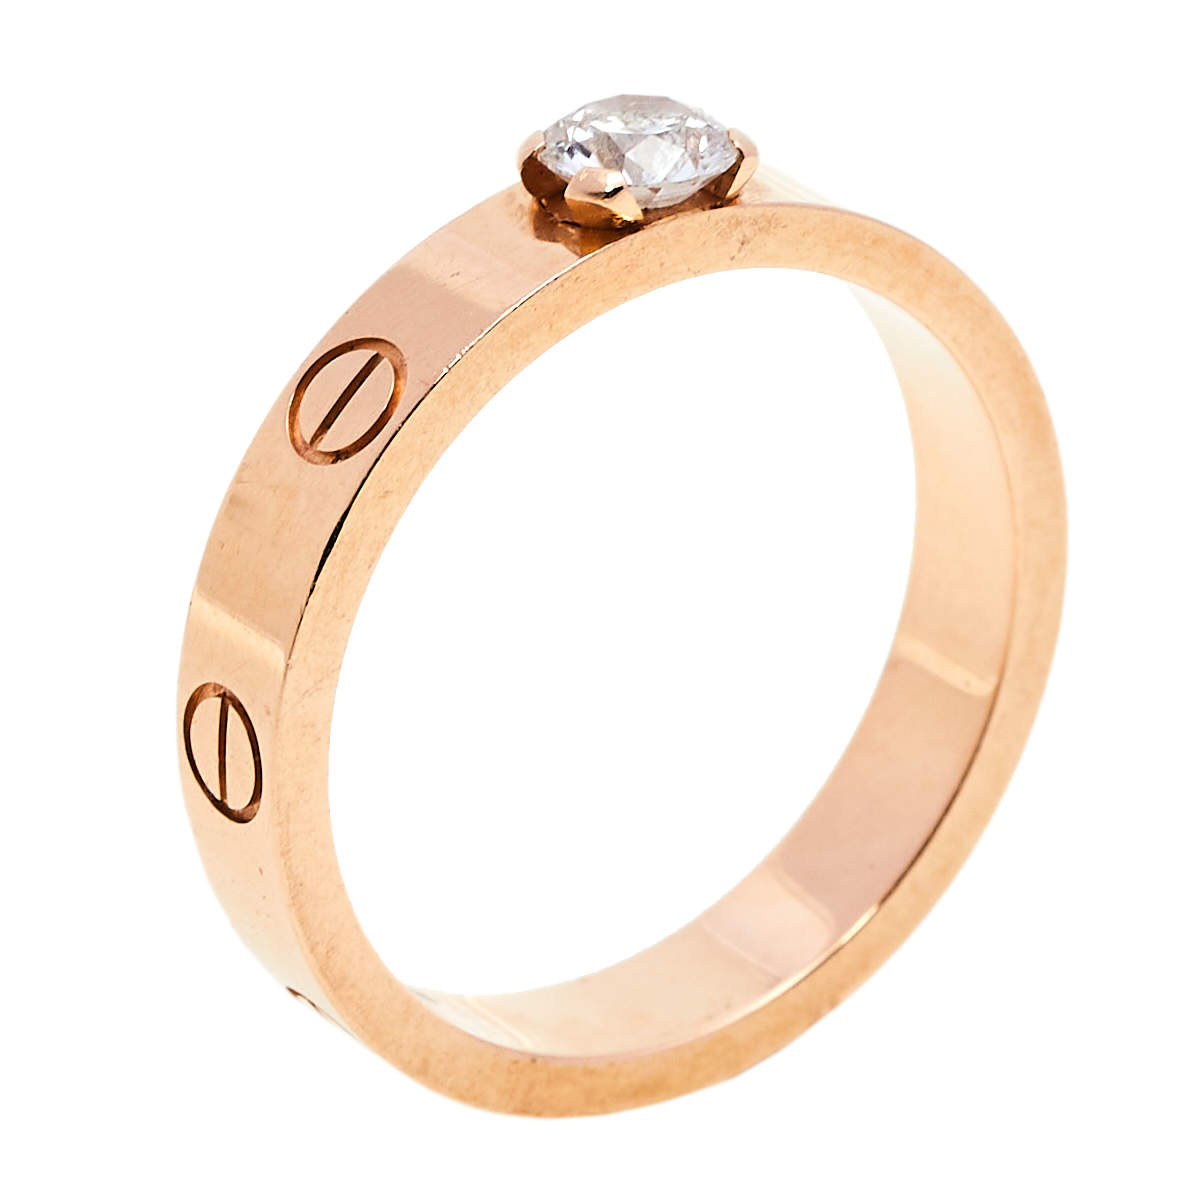 Cartier Love 0.25ct Solitaire Diamond 18K Rose Gold Narrow Band Ring Size 53